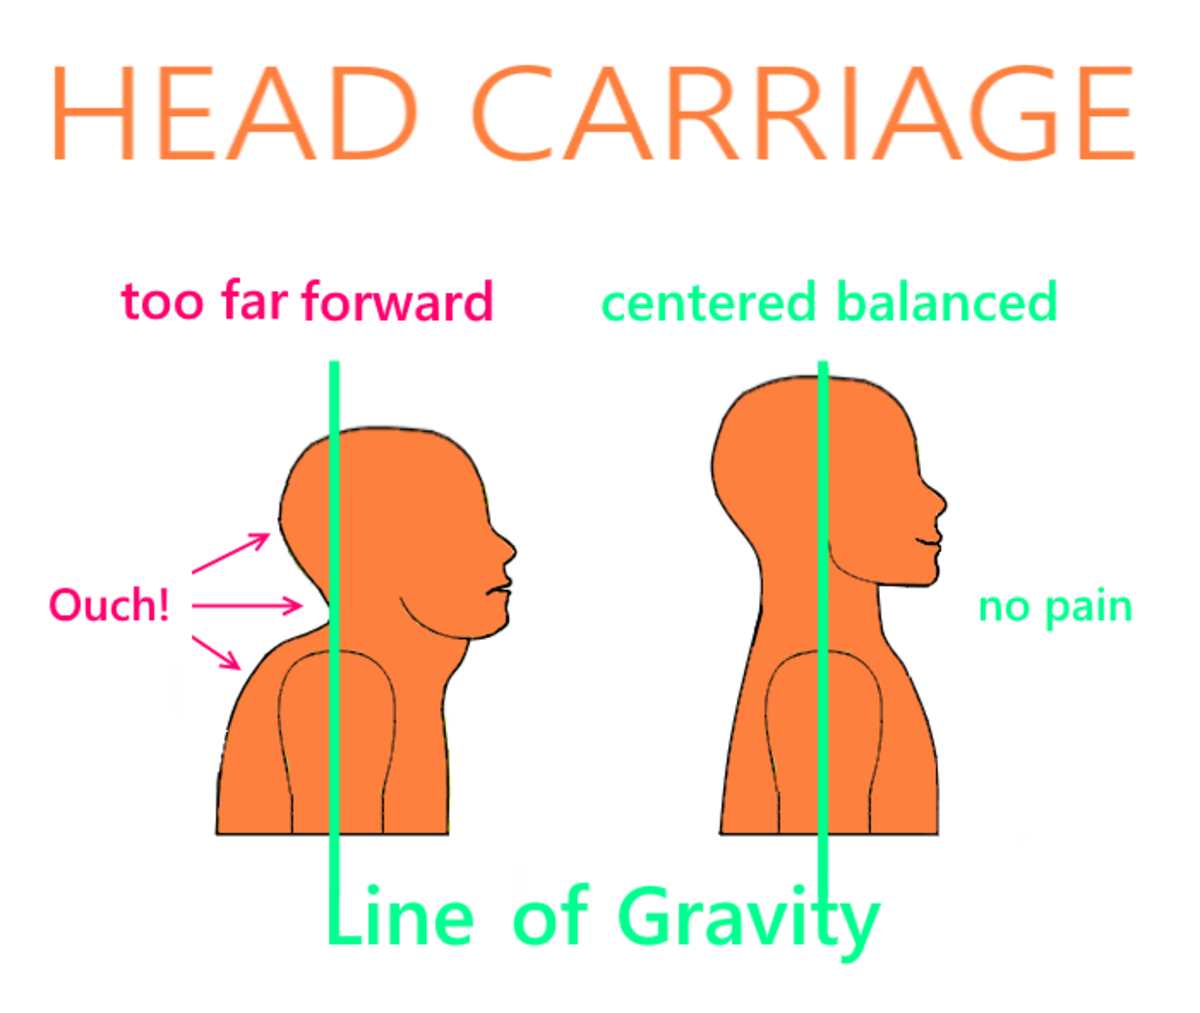 Neck Alignment for Good Posture: See the Dowager's hump and double chin in the first picture?